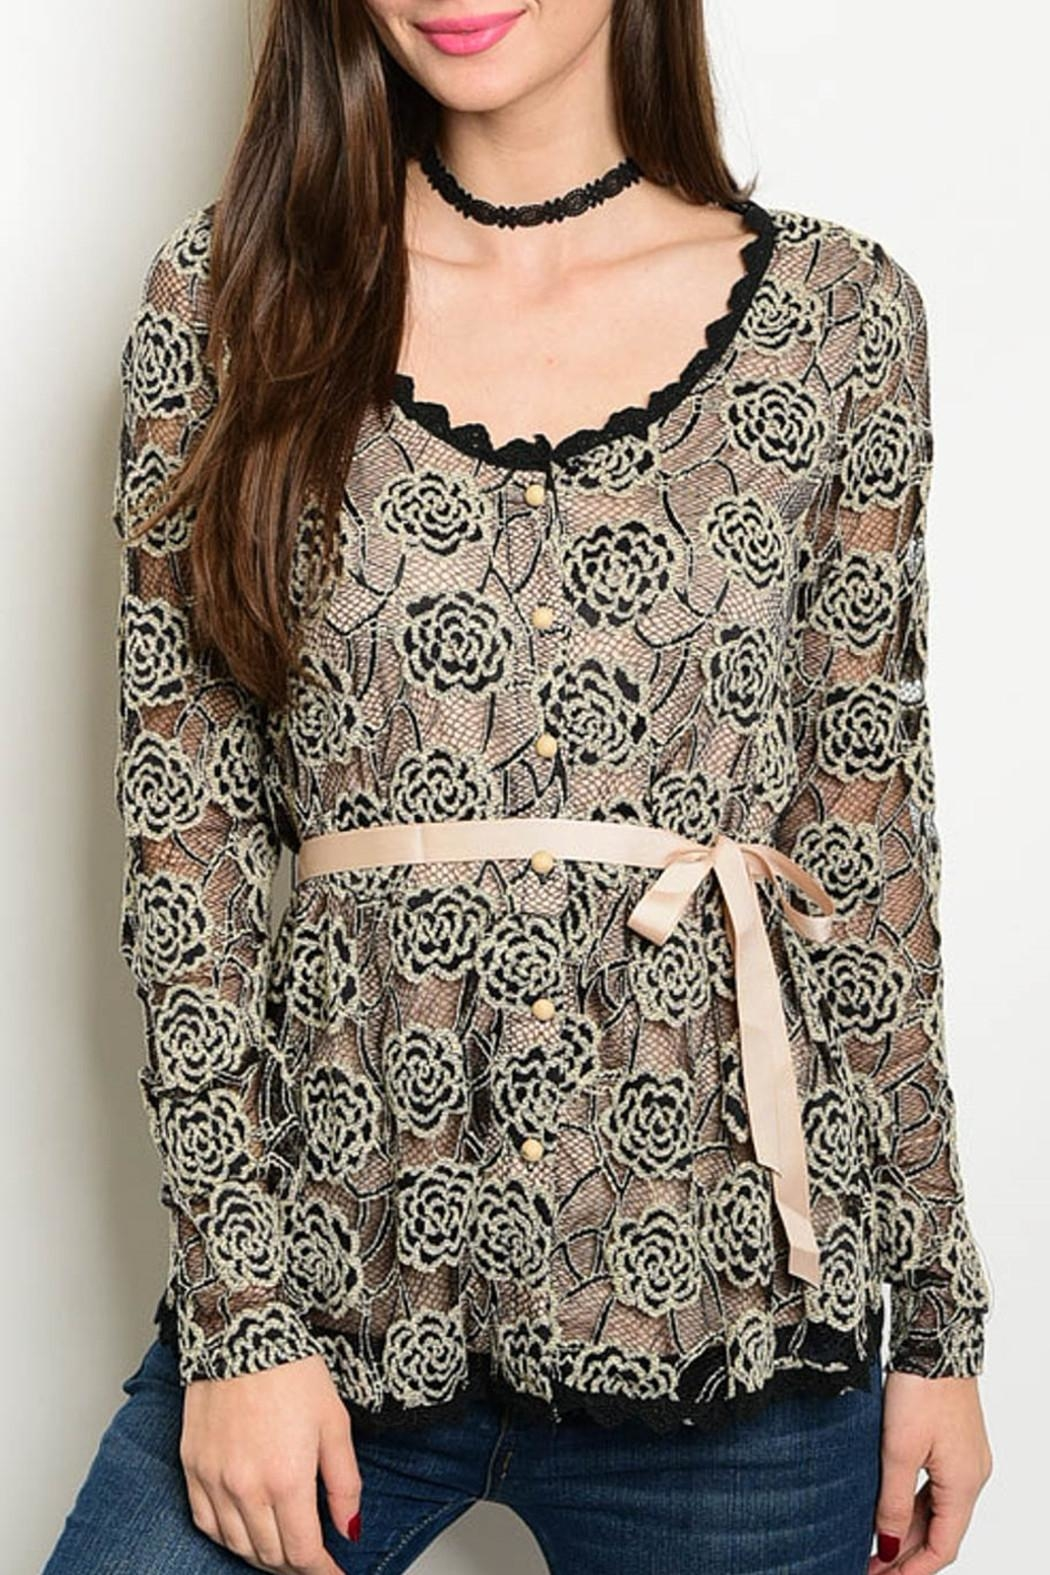 Amitie Clothing Taupe Black Blouse - Front Cropped Image